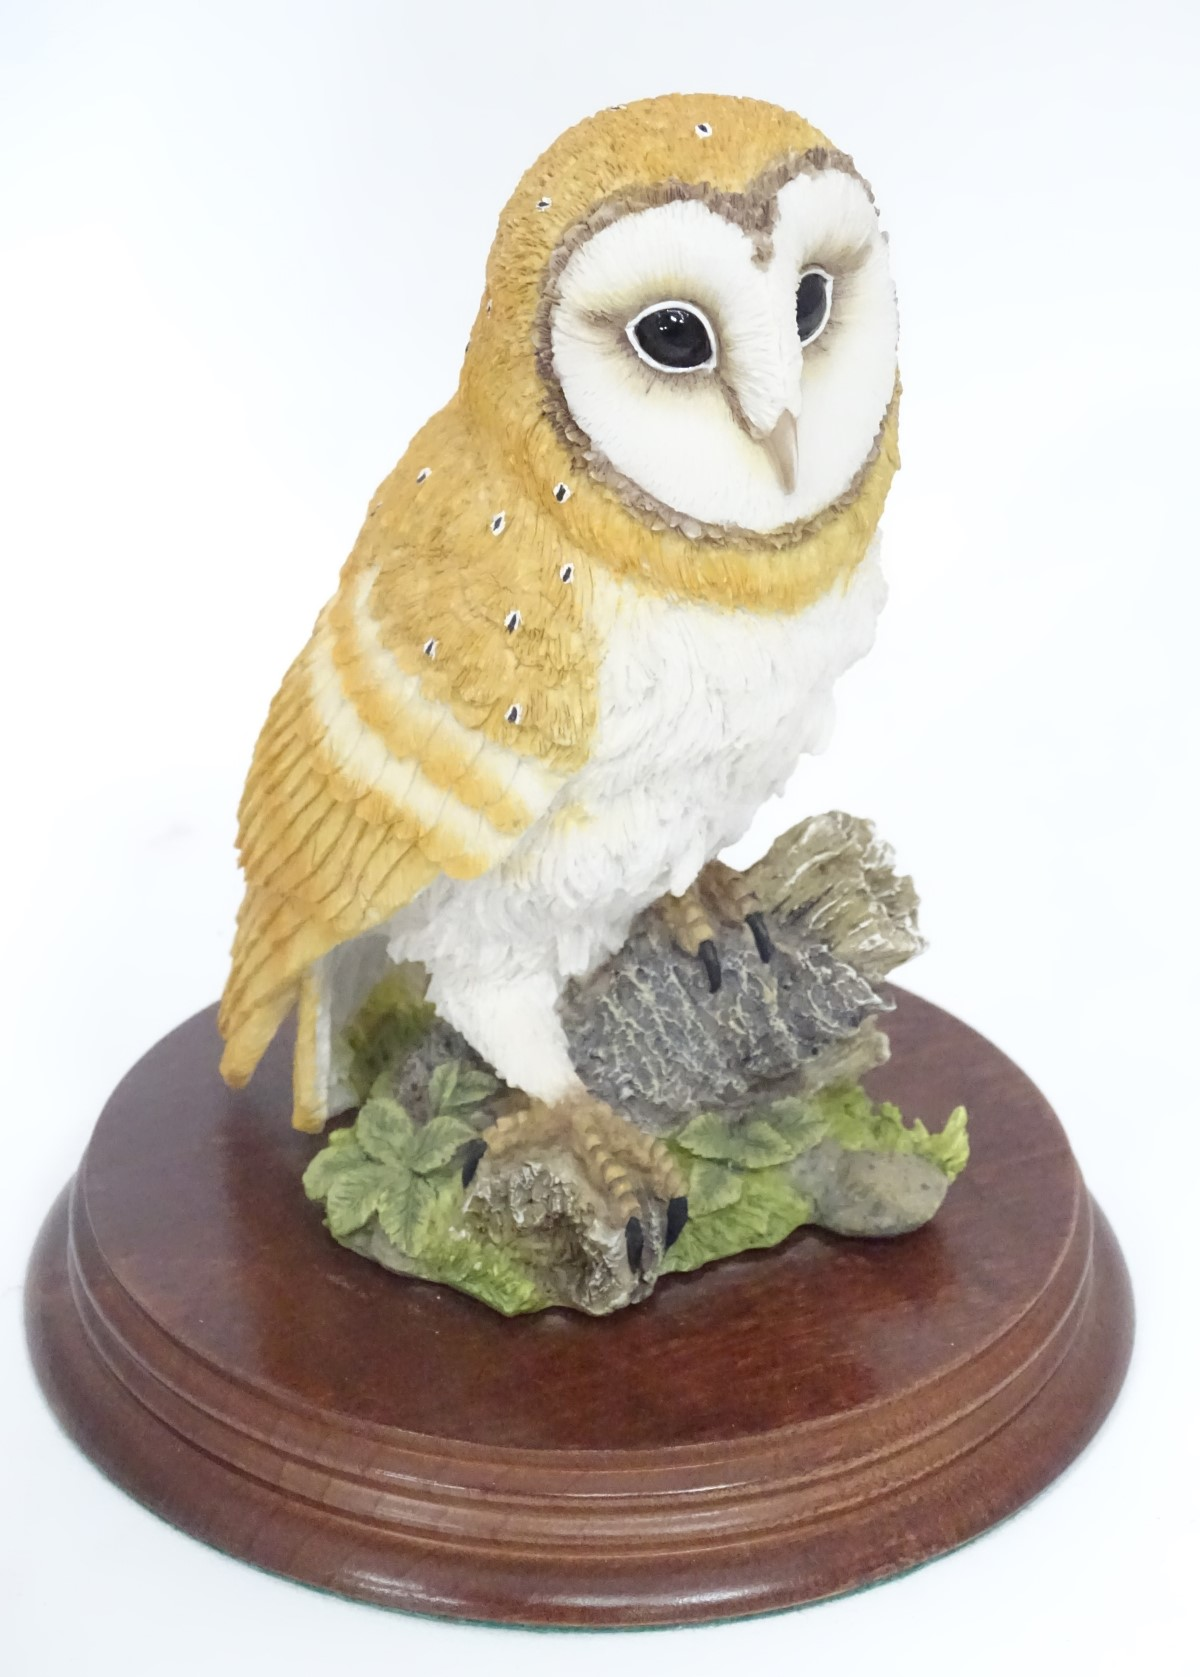 Lot 25 - A Leonardo Collection model of a barn owl CONDITION: Please Note - we do not make